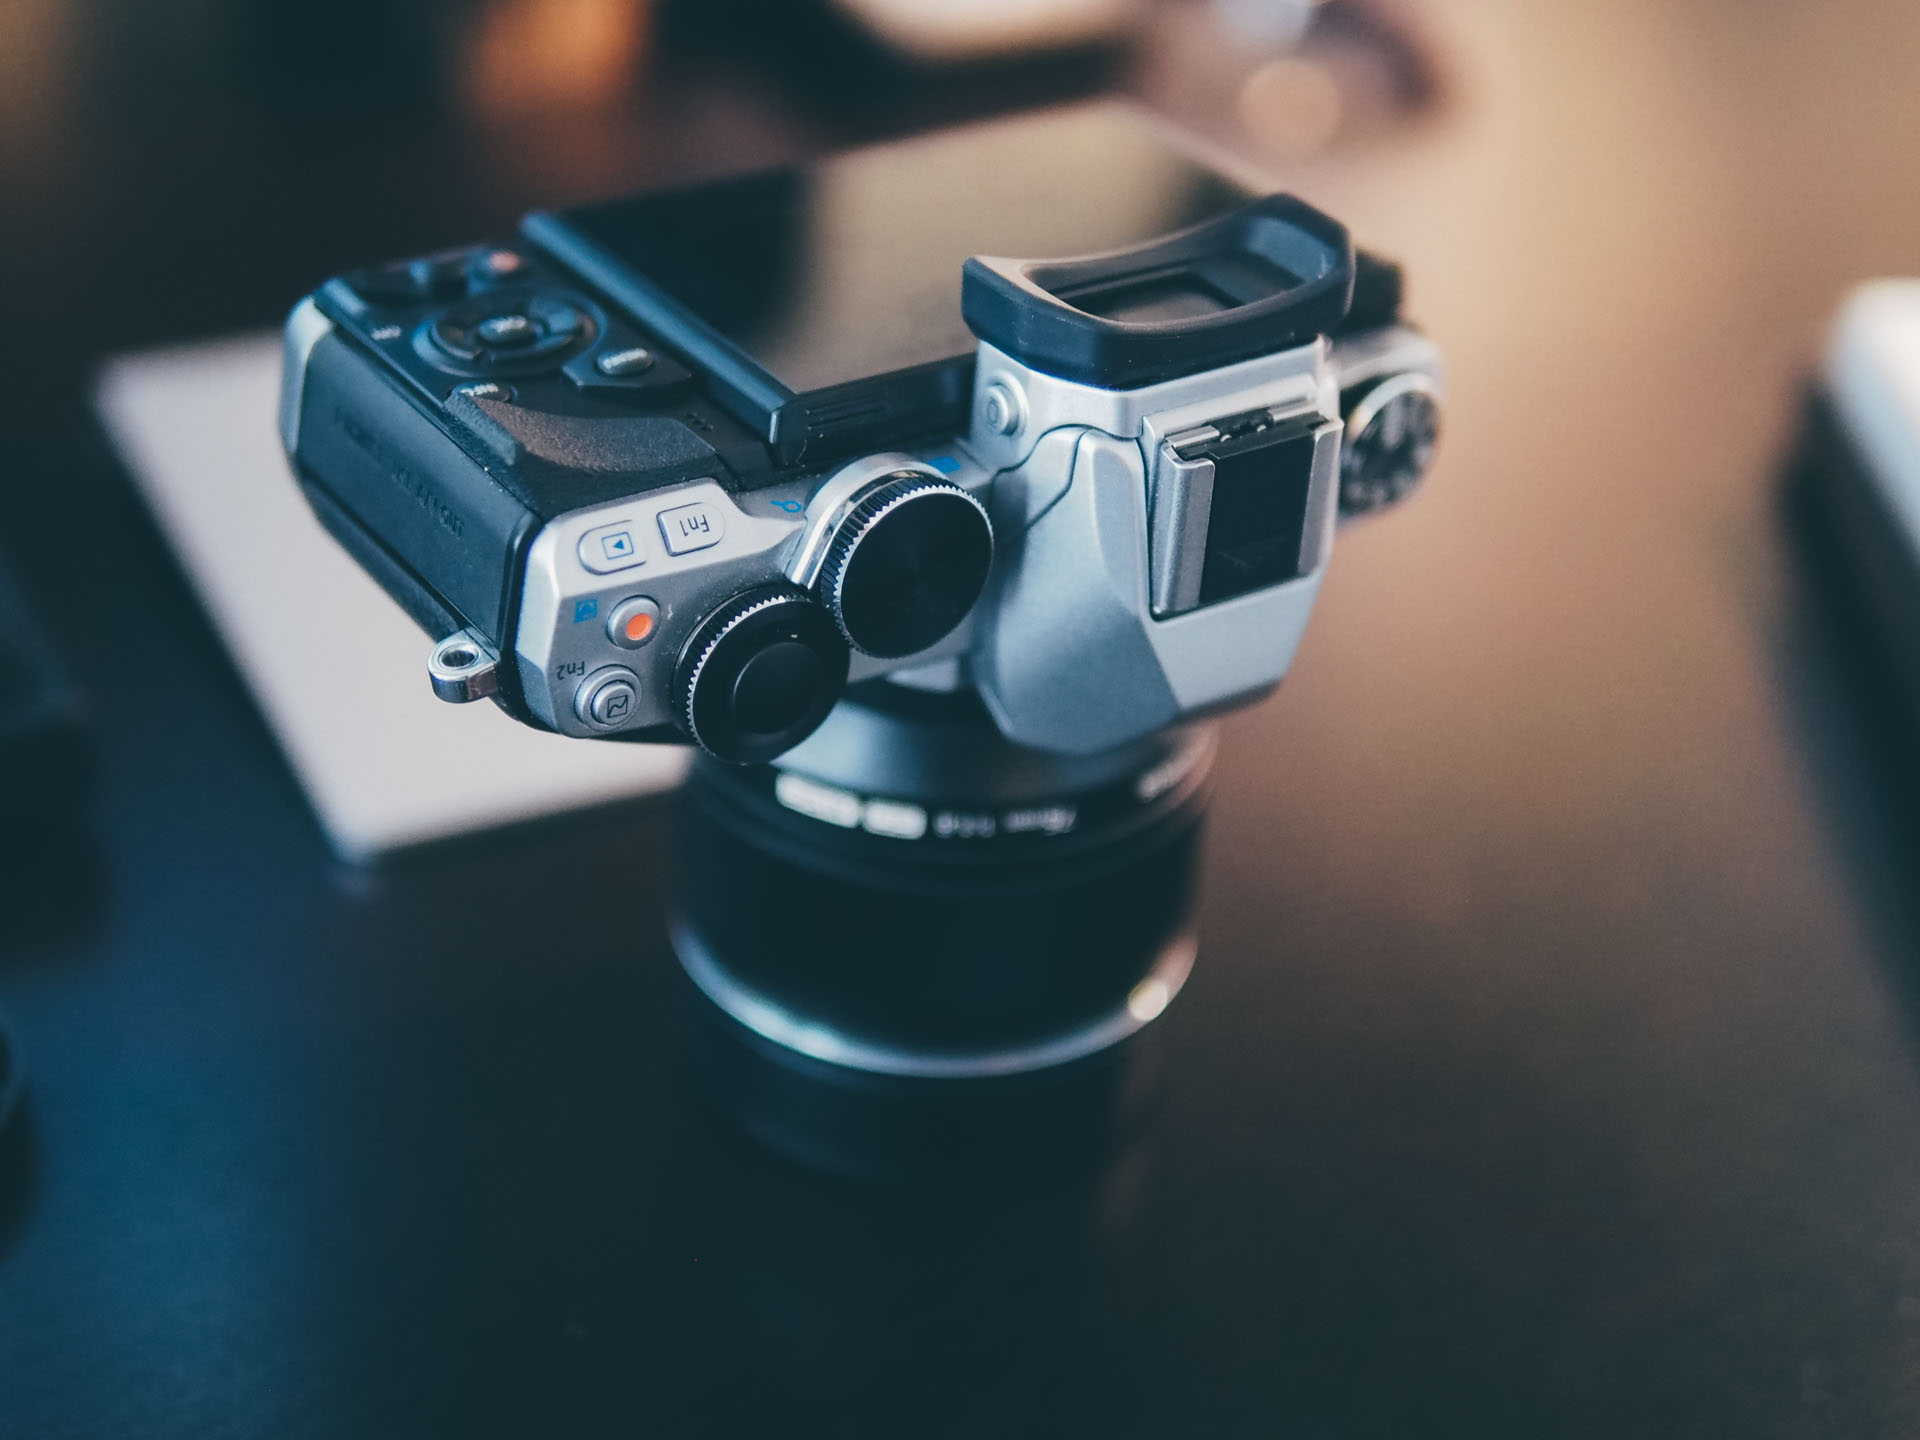 The E-M10 has two manual control dials which can control aperture, exposure, shutter, speed, and more. There are also two function buttons (Fn) that you can set to toggle any setting you want.